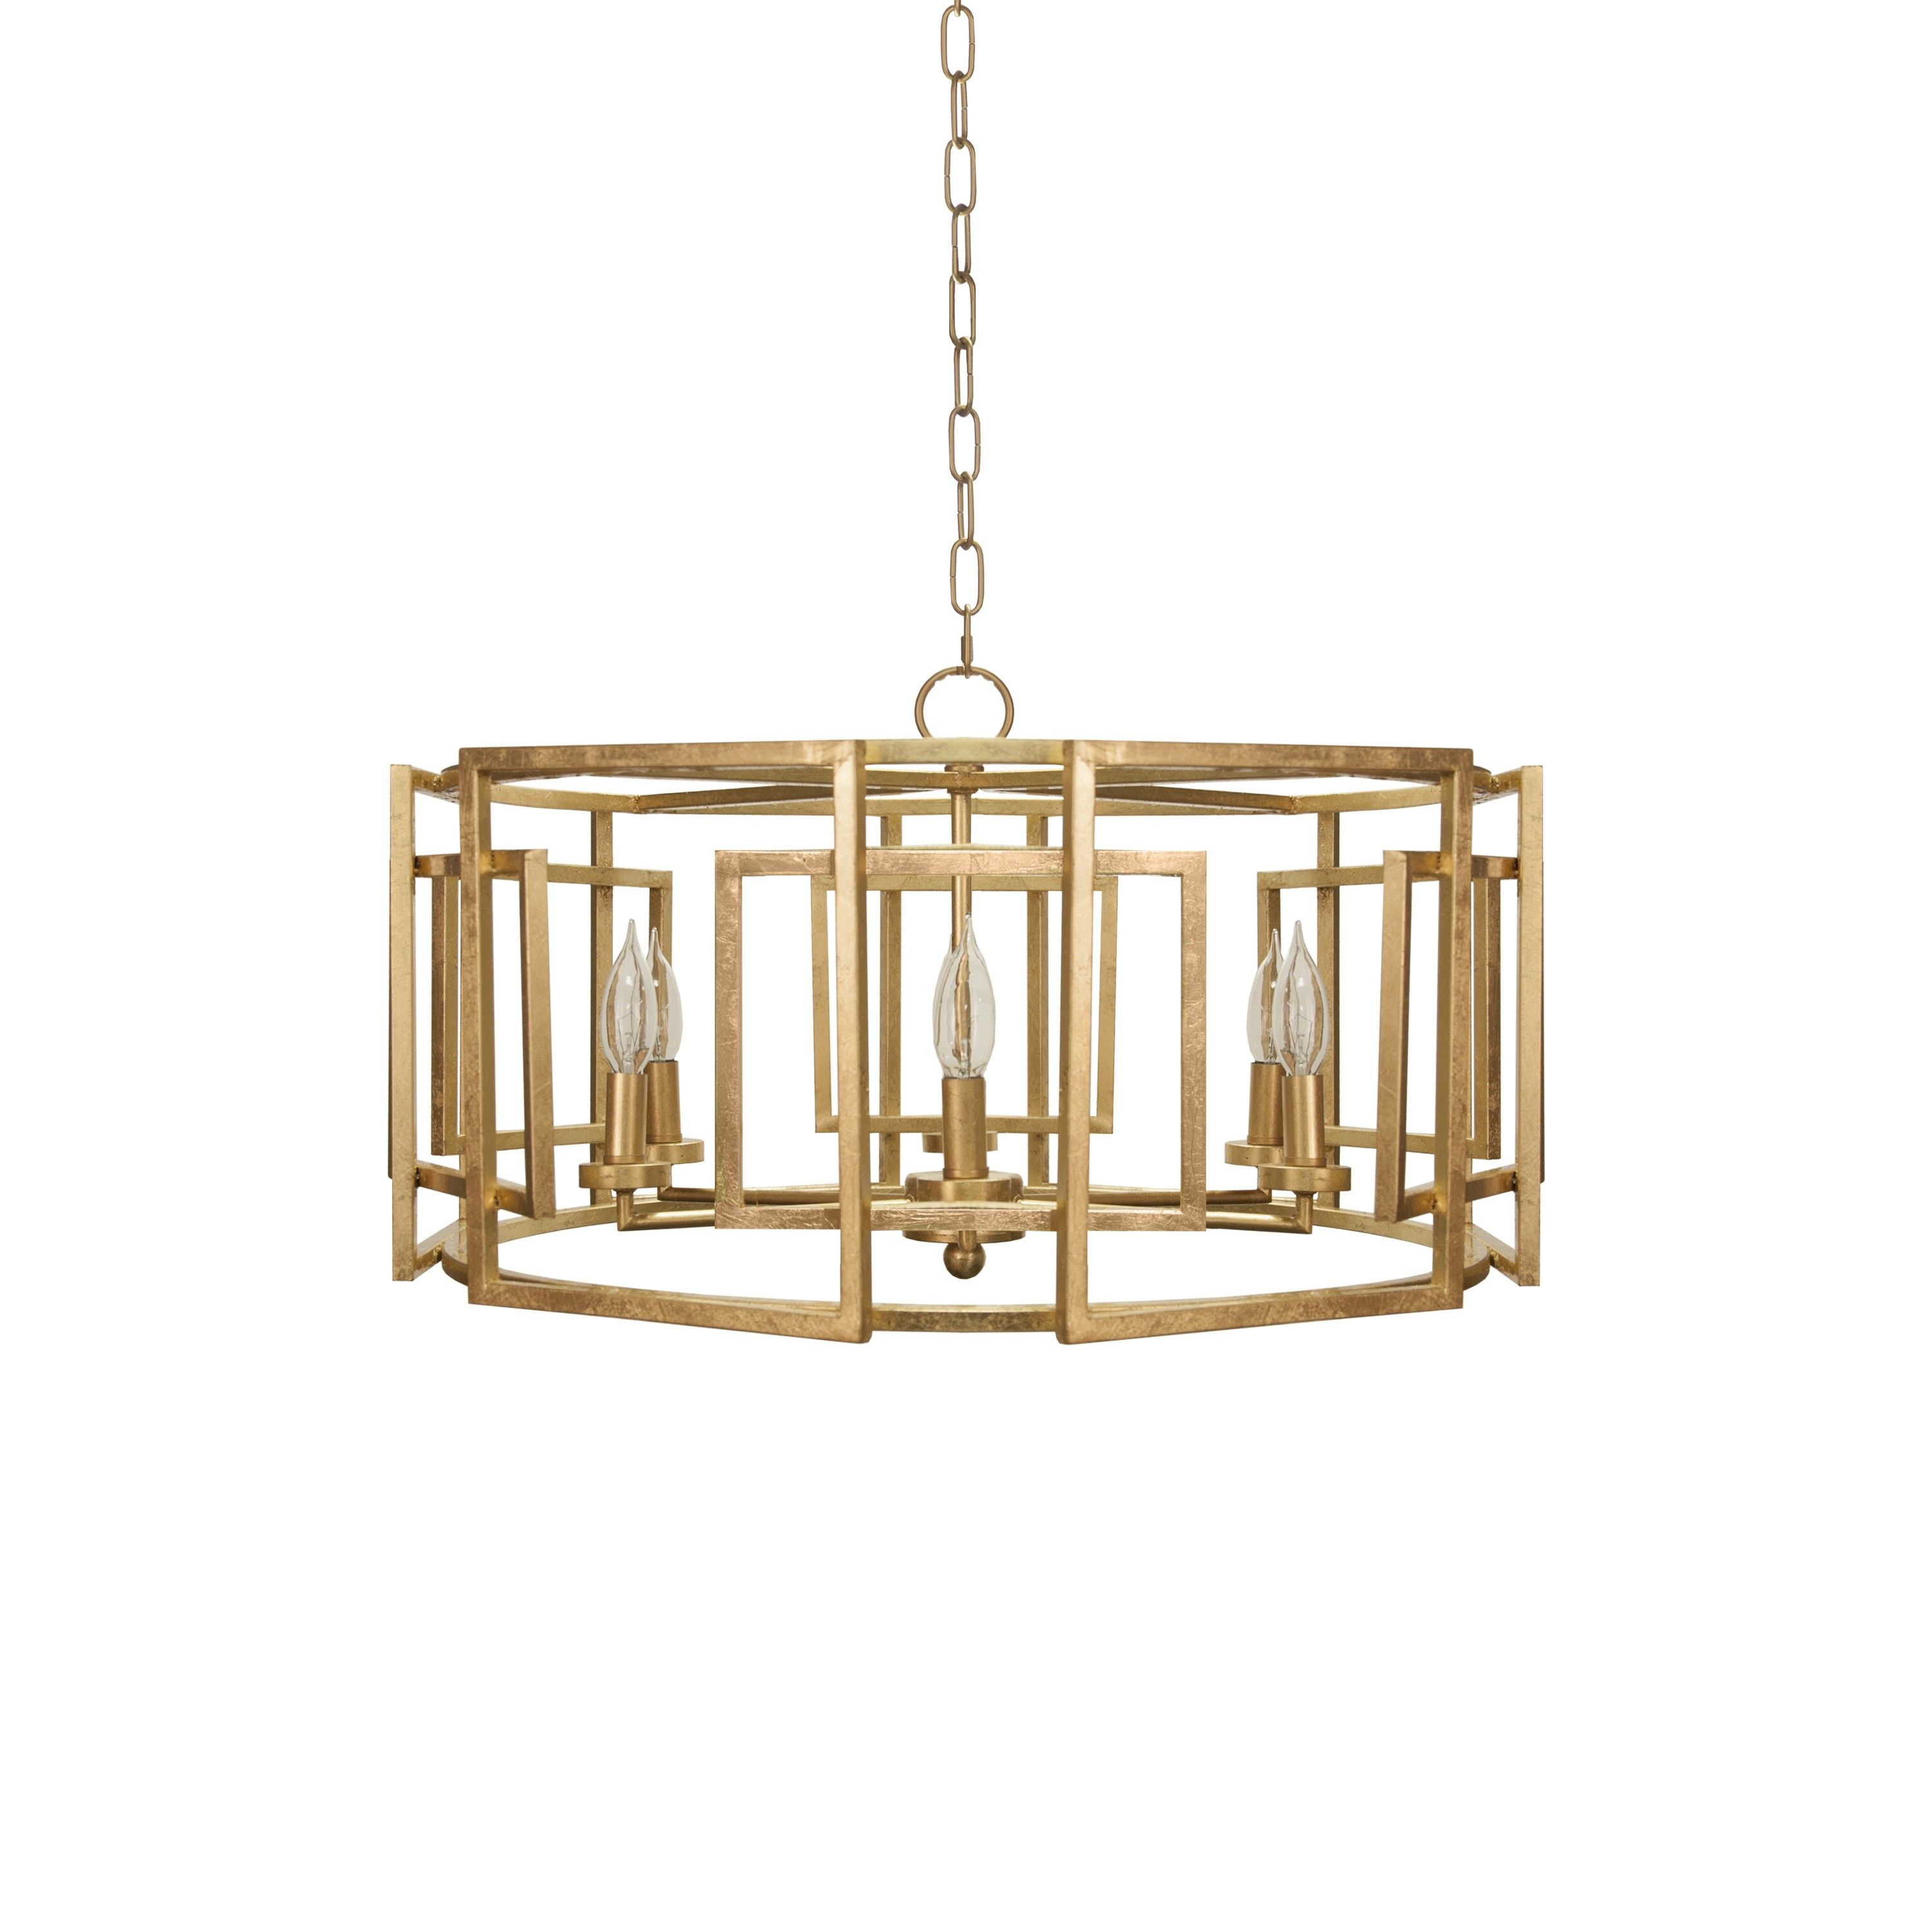 Mckenzie Gold Leaf Pendant | Lighting | Modern Chandelier pertaining to Wightman Drum Chandeliers (Image 16 of 30)